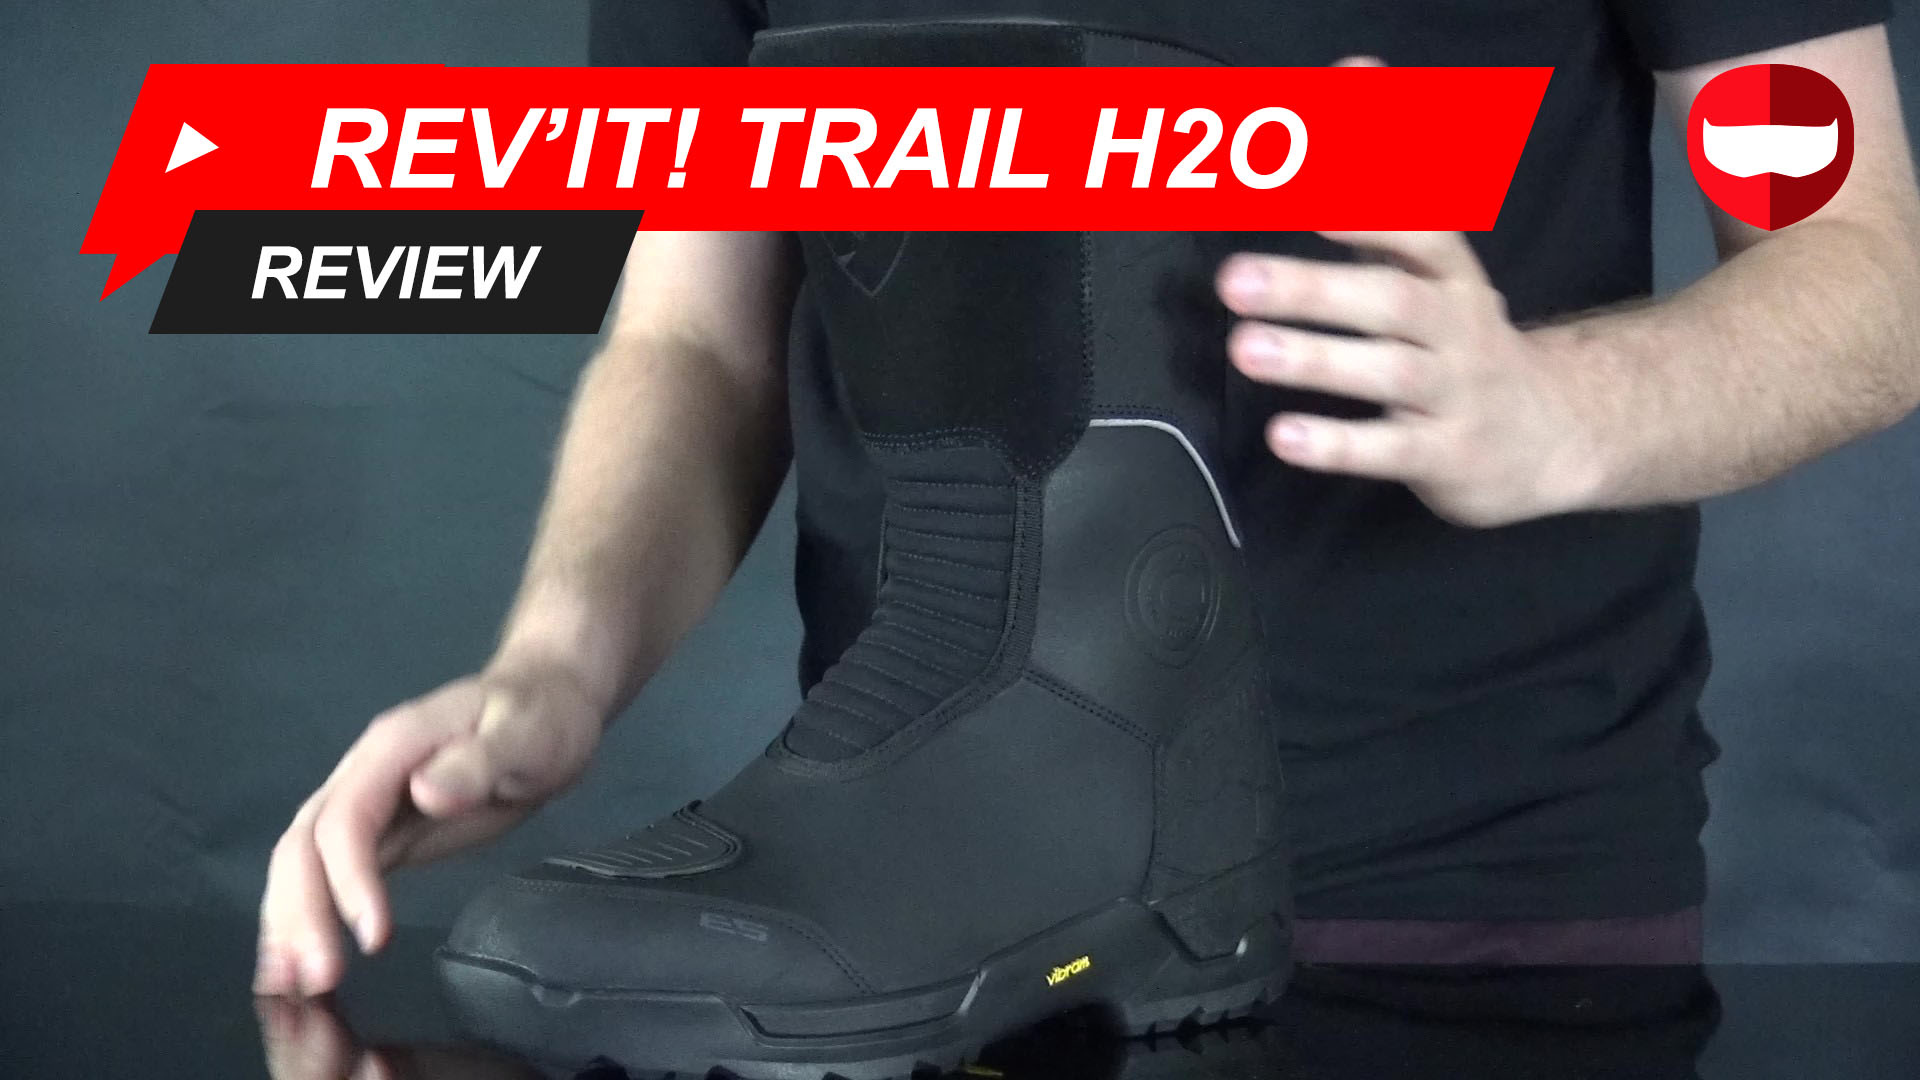 Revit Trail H2O Boot Review and Video